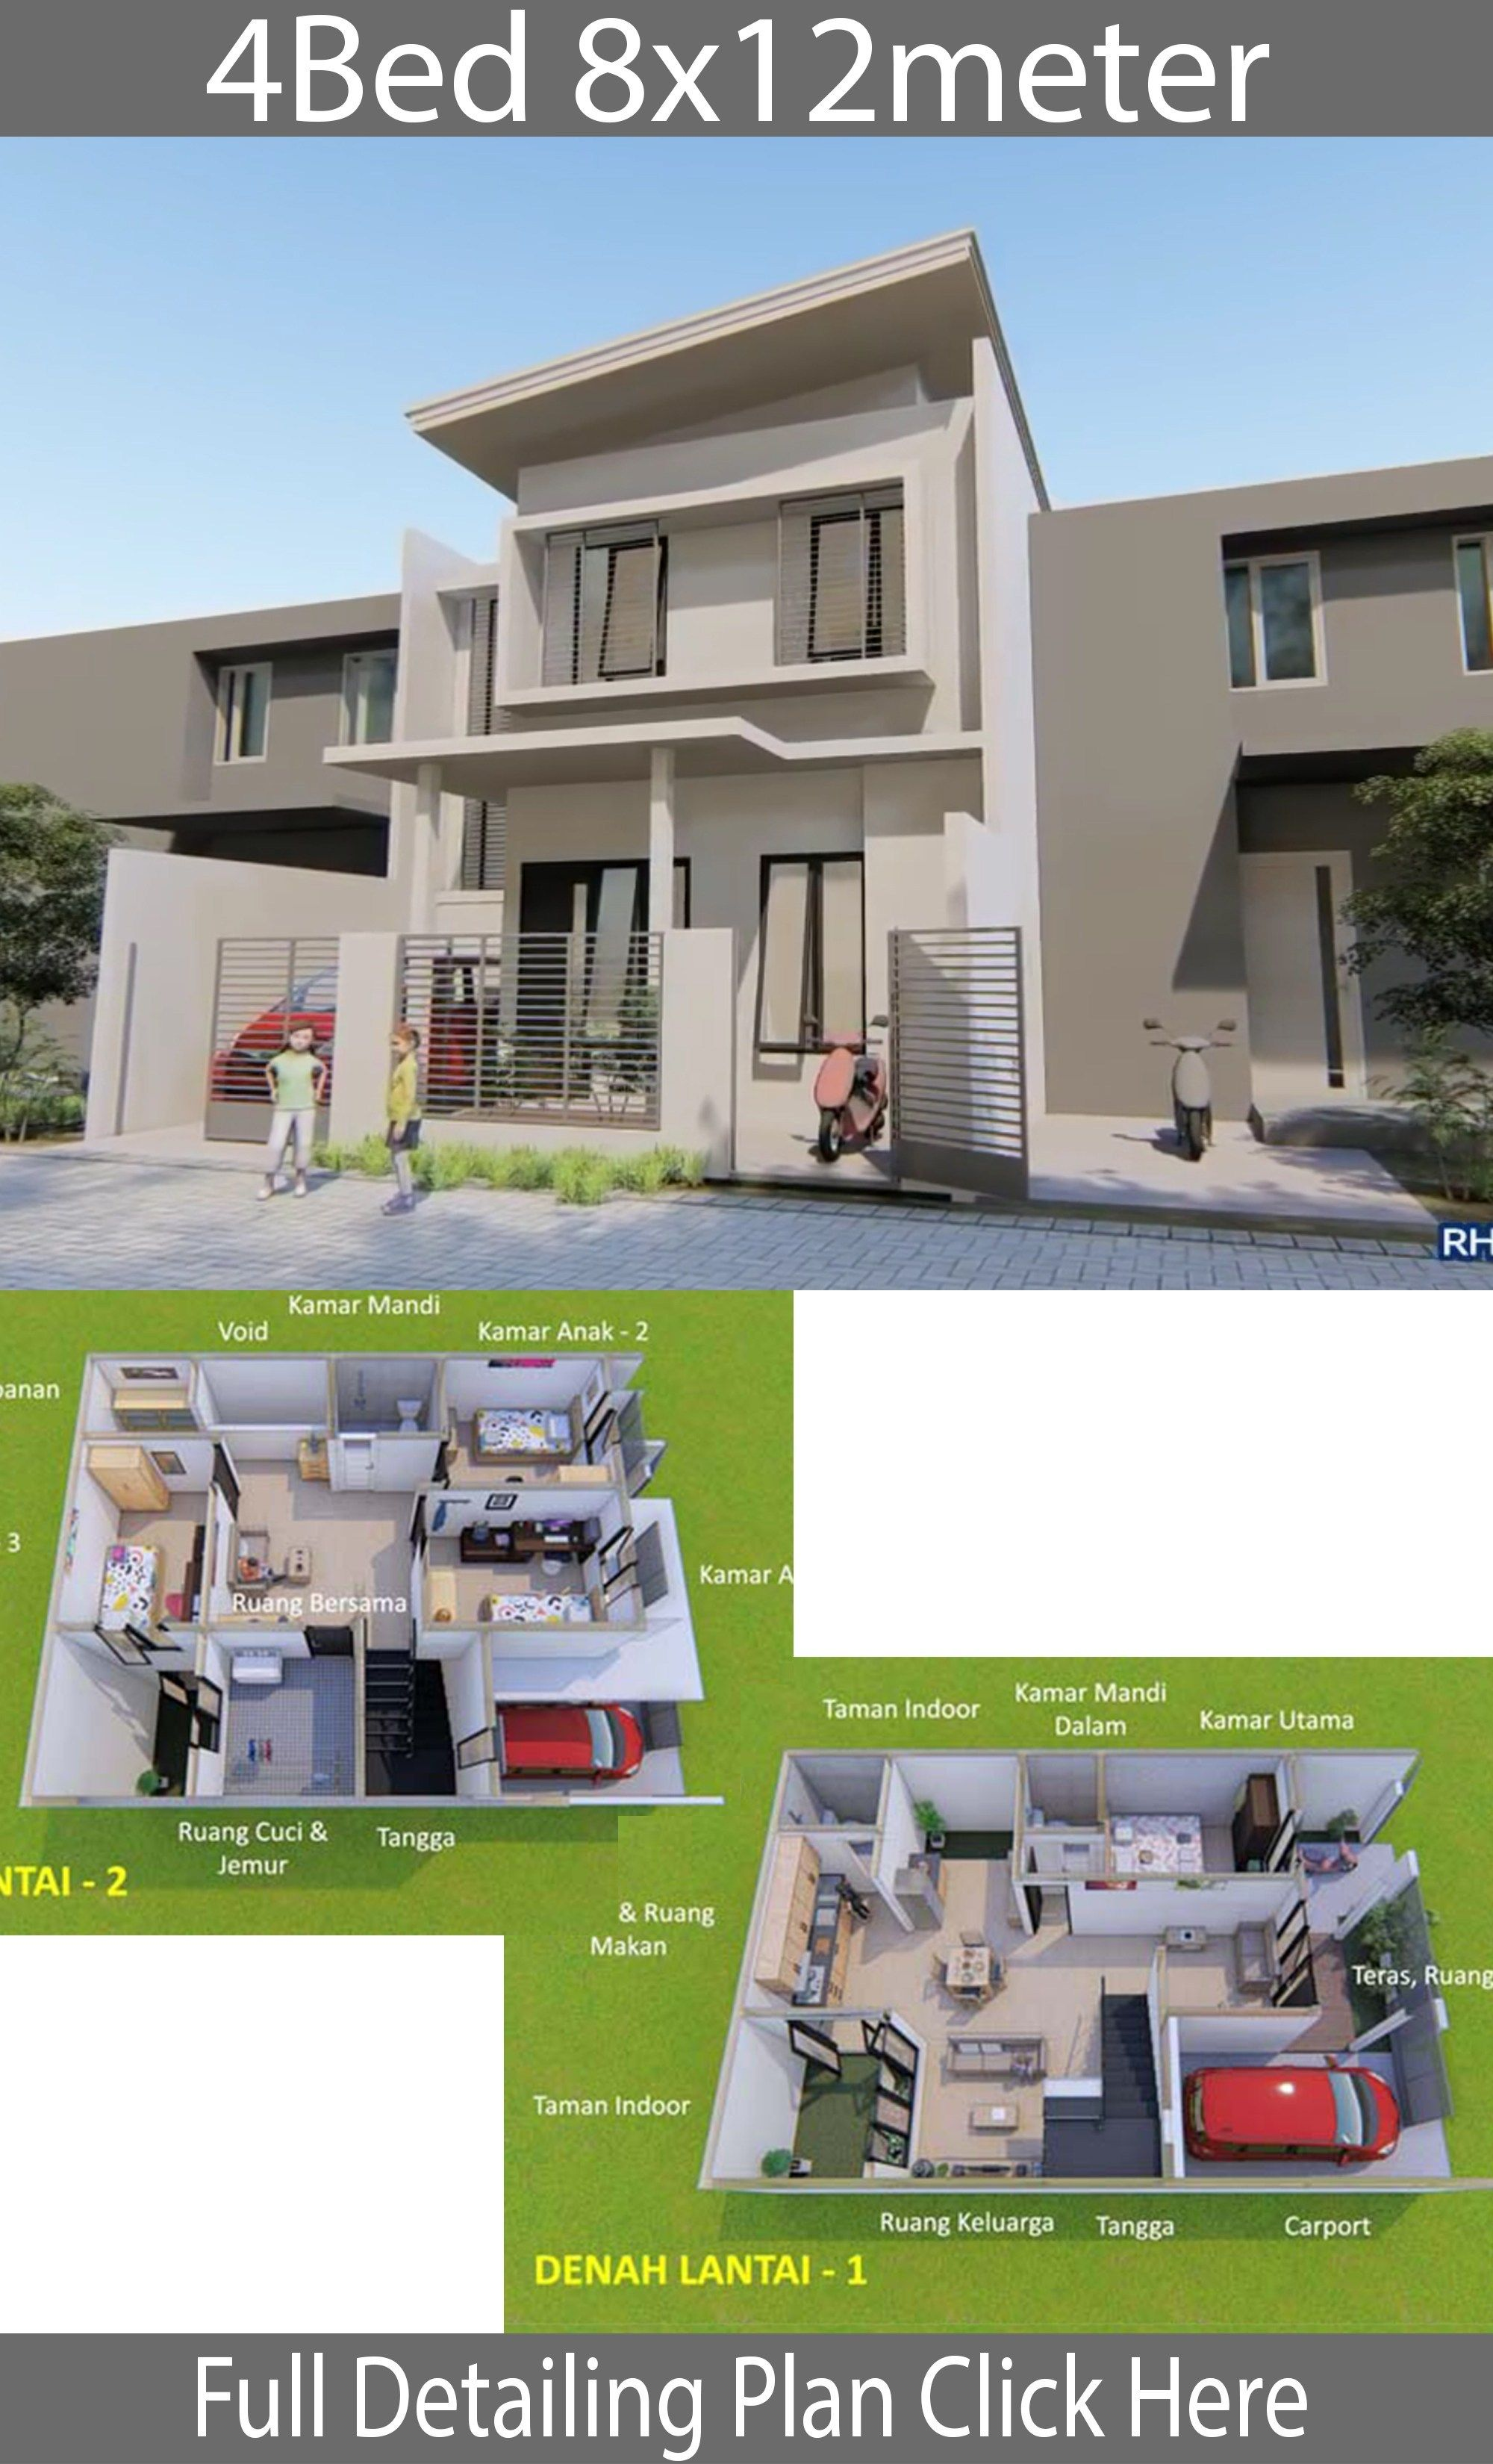 Home Design Plan 8x12m With 4 Bedrooms Simple Minimalist House Design On 8x12 Meters Land With 4 Bedrooms 2 Fl House Design Home Design Plans Home Design Plan